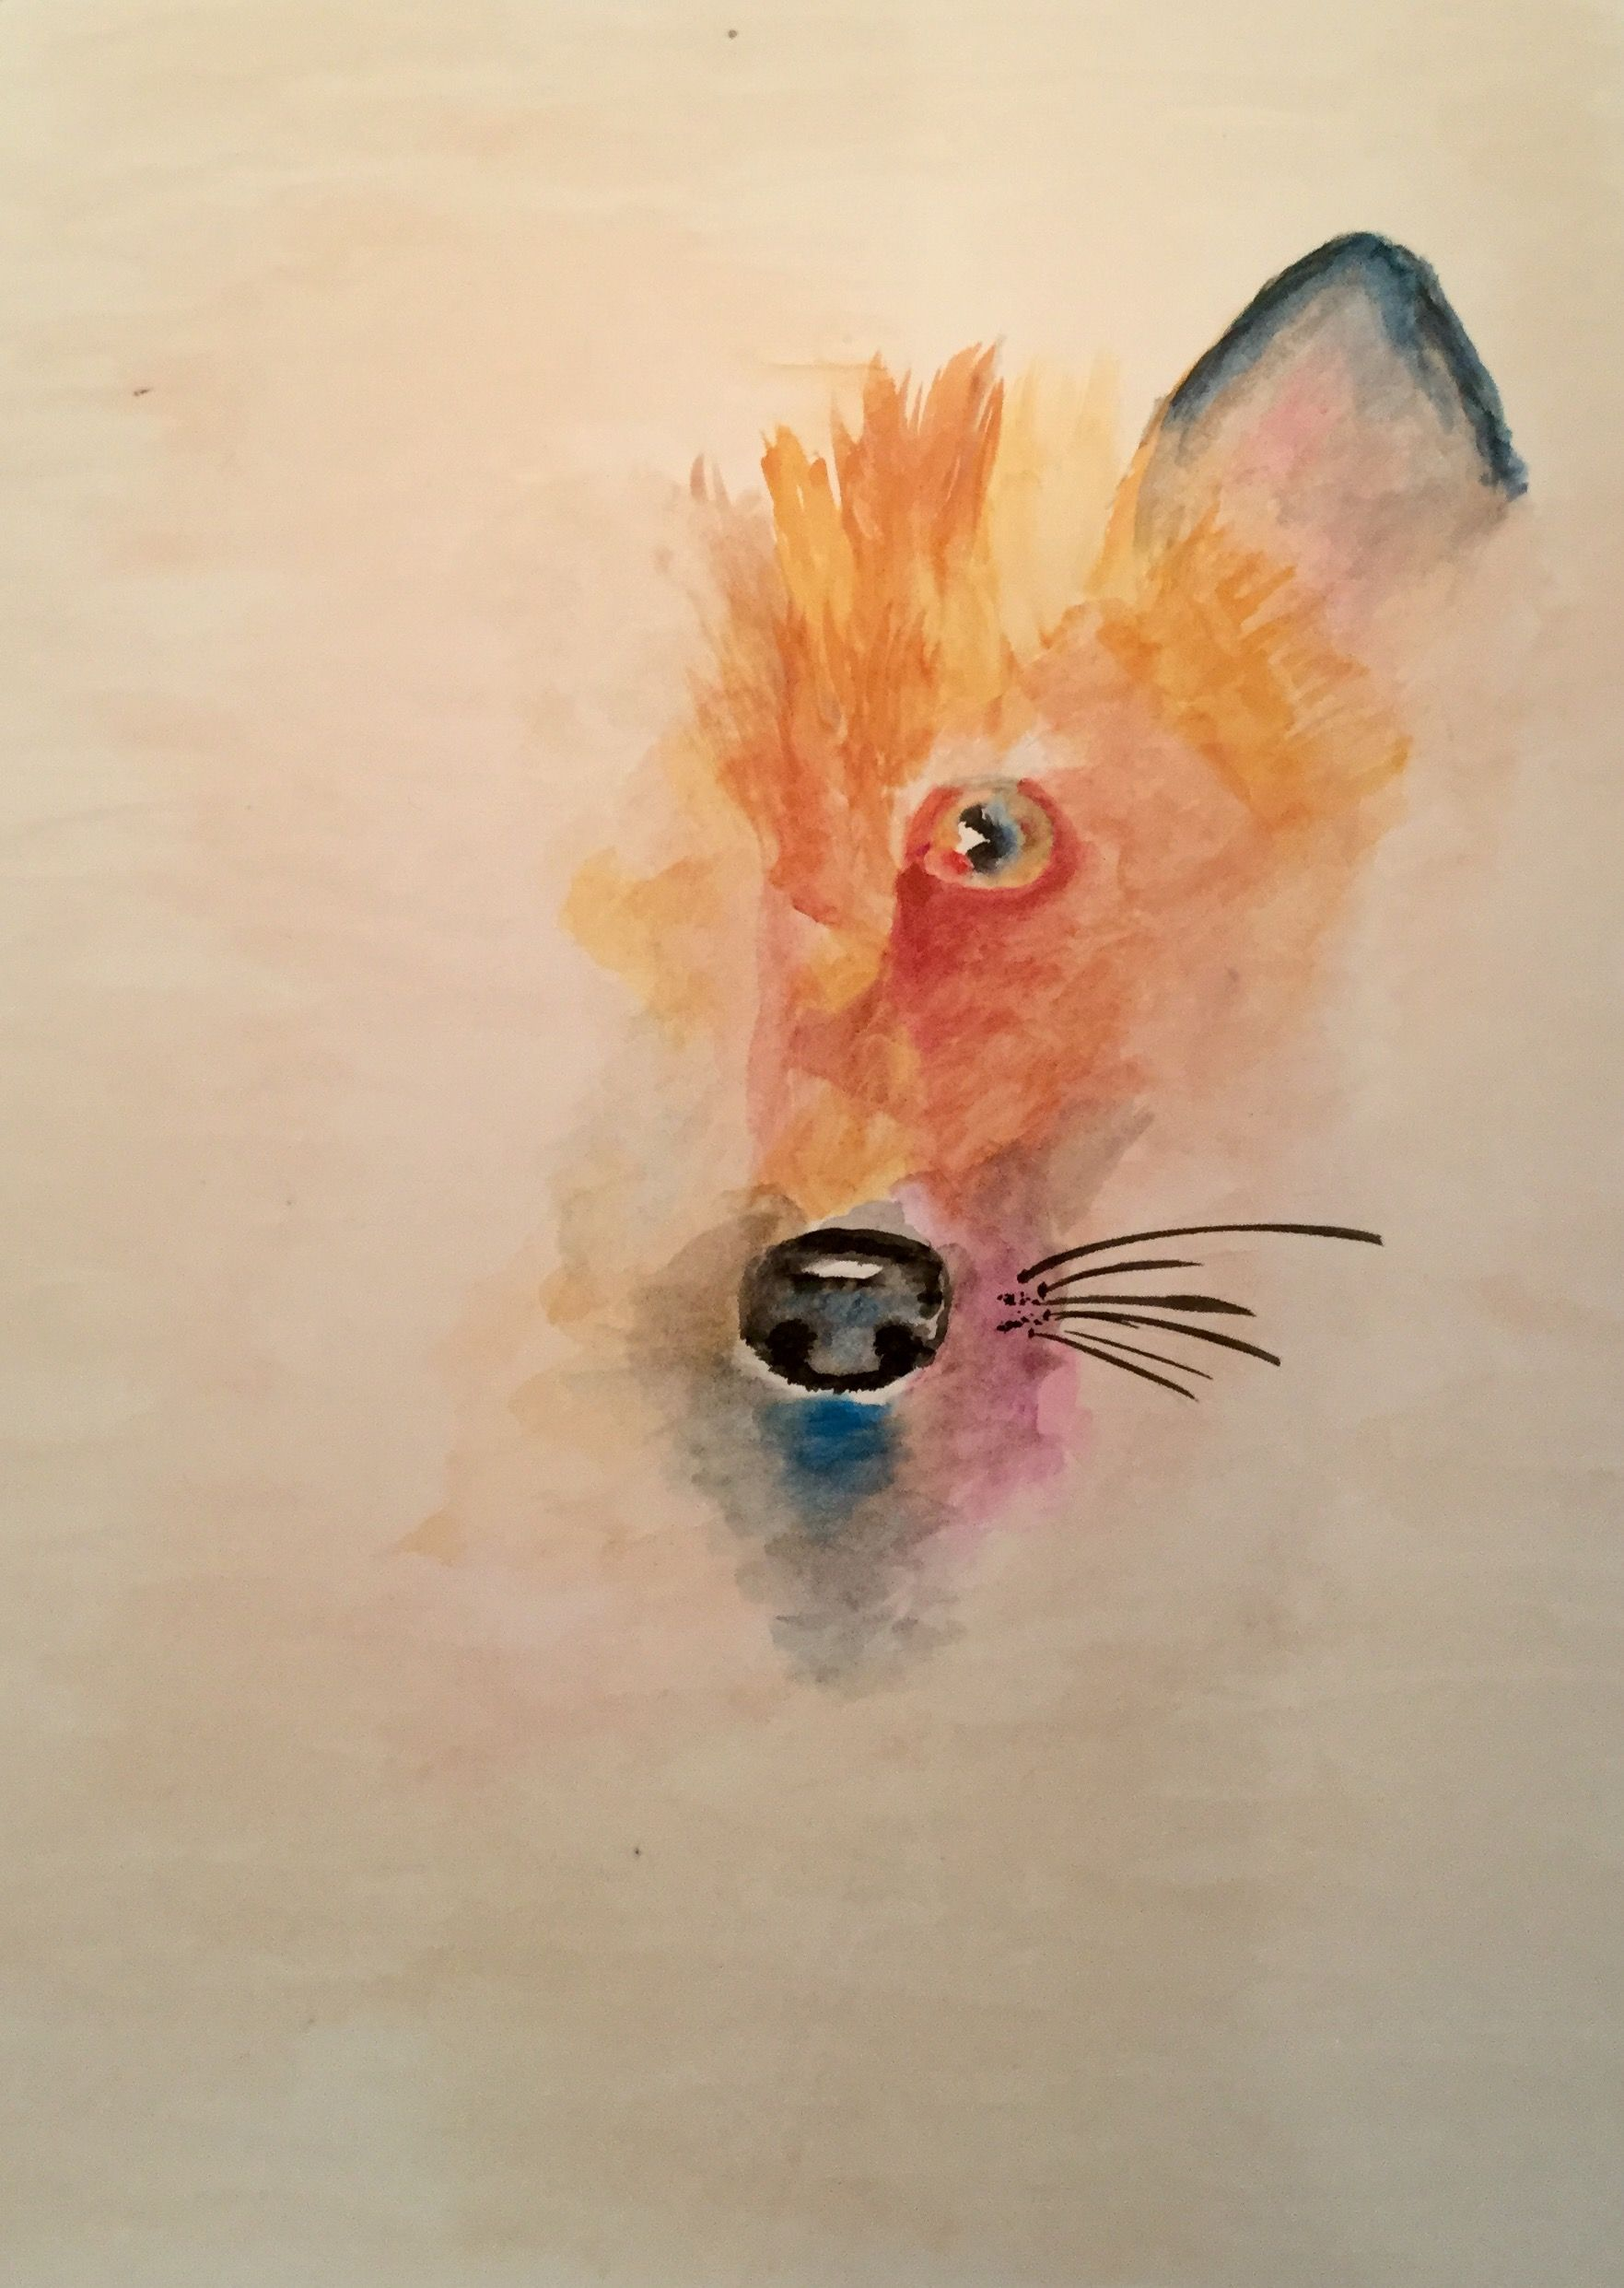 Fox inspired by Louise Romero. Hers is much better of course!